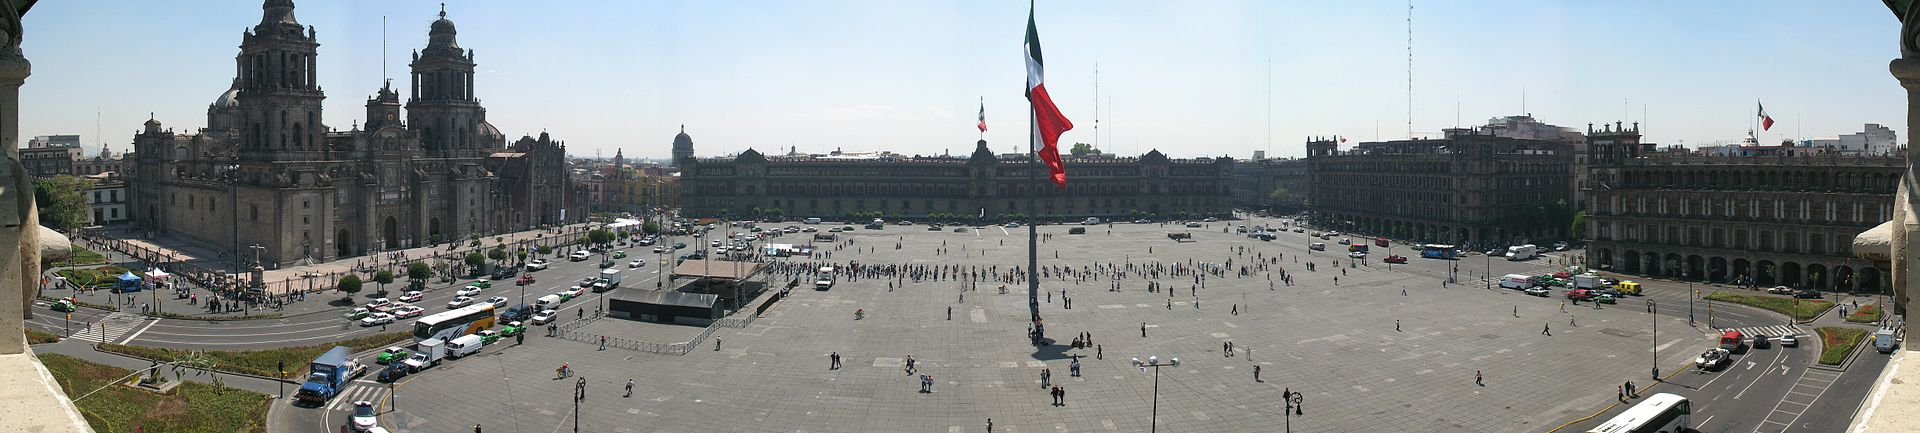 1920px-Zocalo_Panorama_seen_from_rooftop_restaurant.jpg